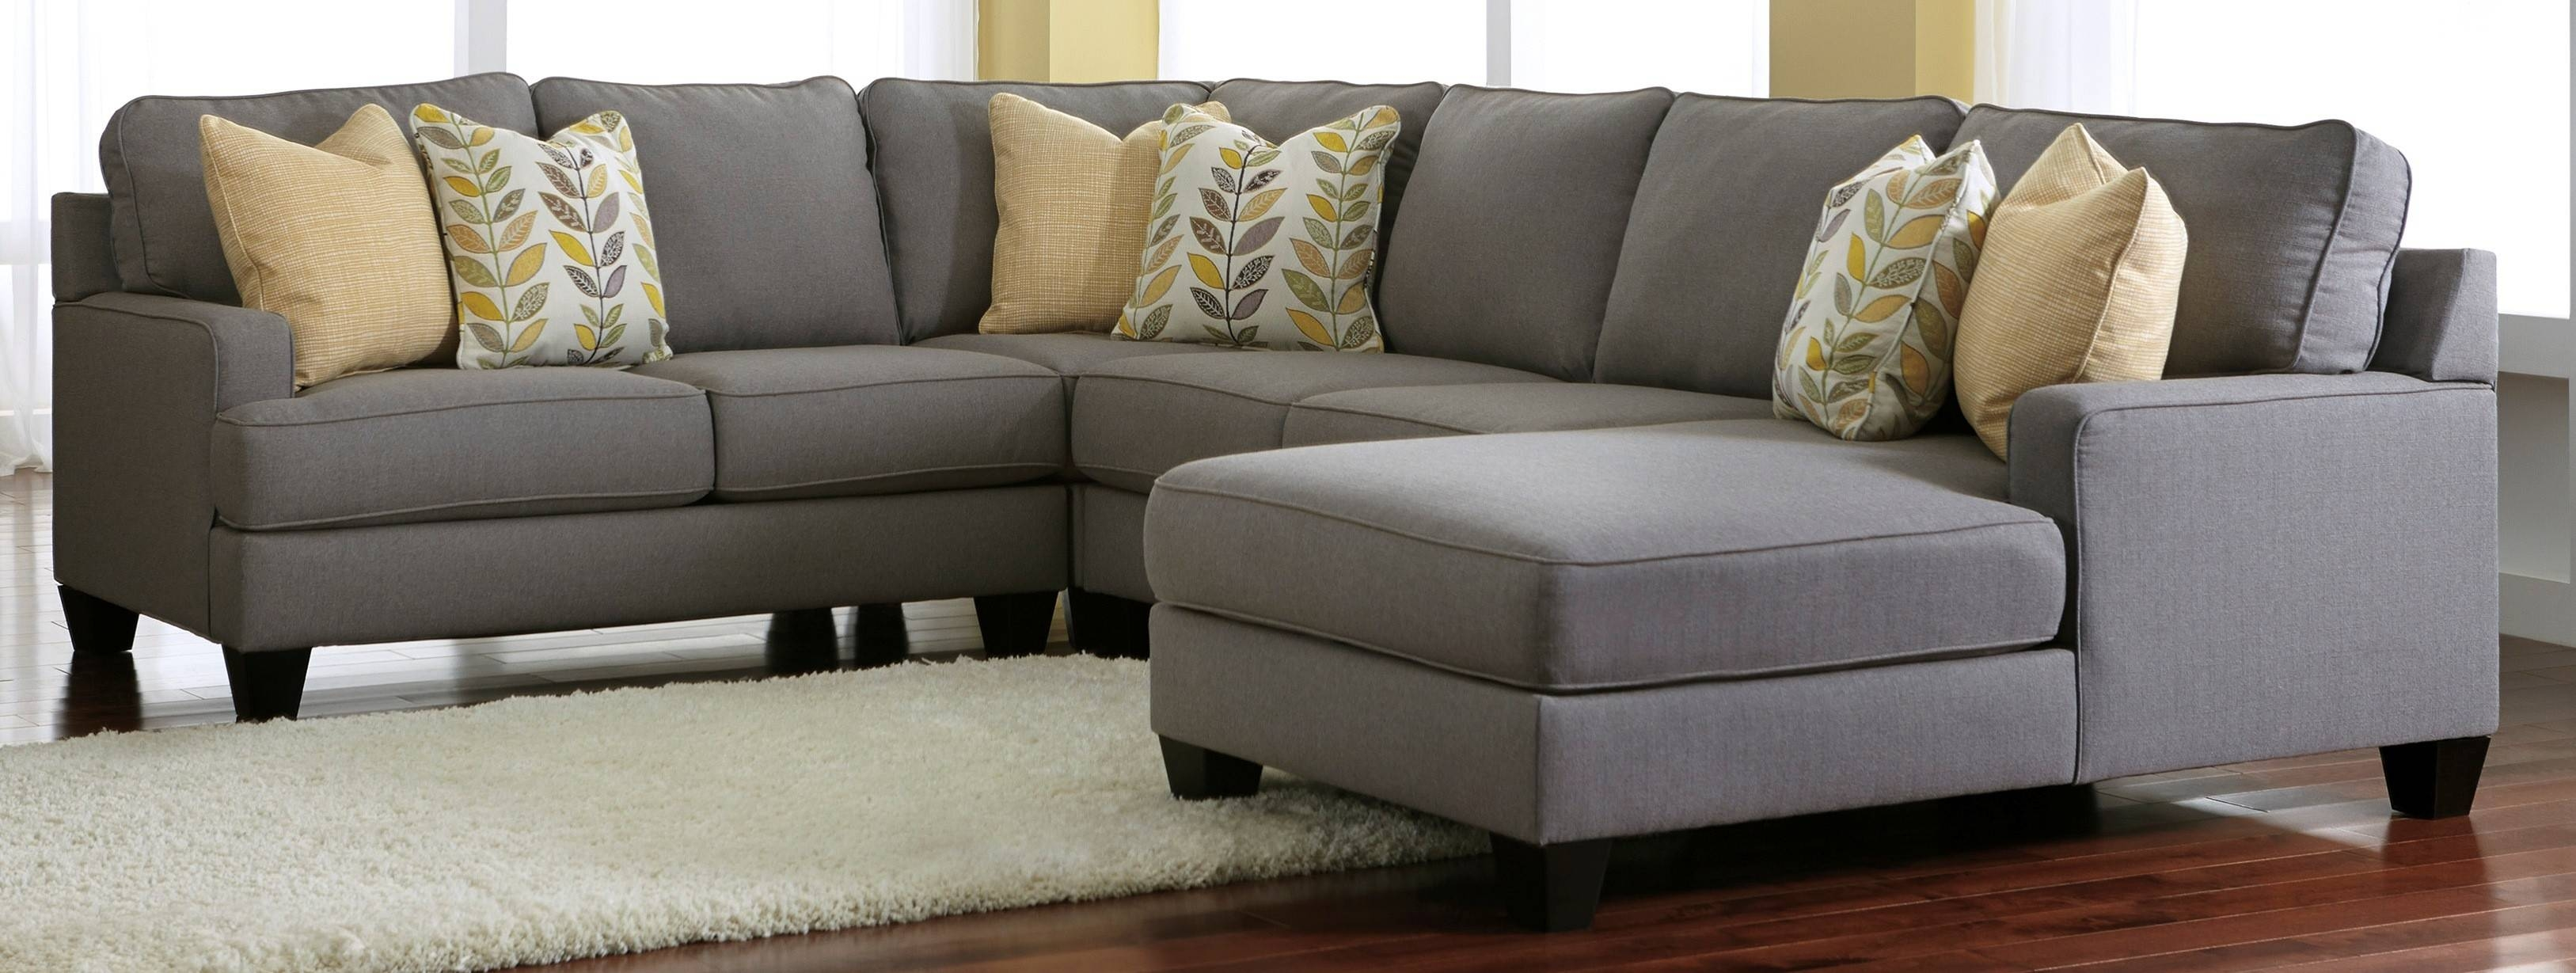 Chair & Sofa: Have An Interesting Living Room With Ashley regarding Ashley Furniture Gray Sofa (Image 18 of 30)